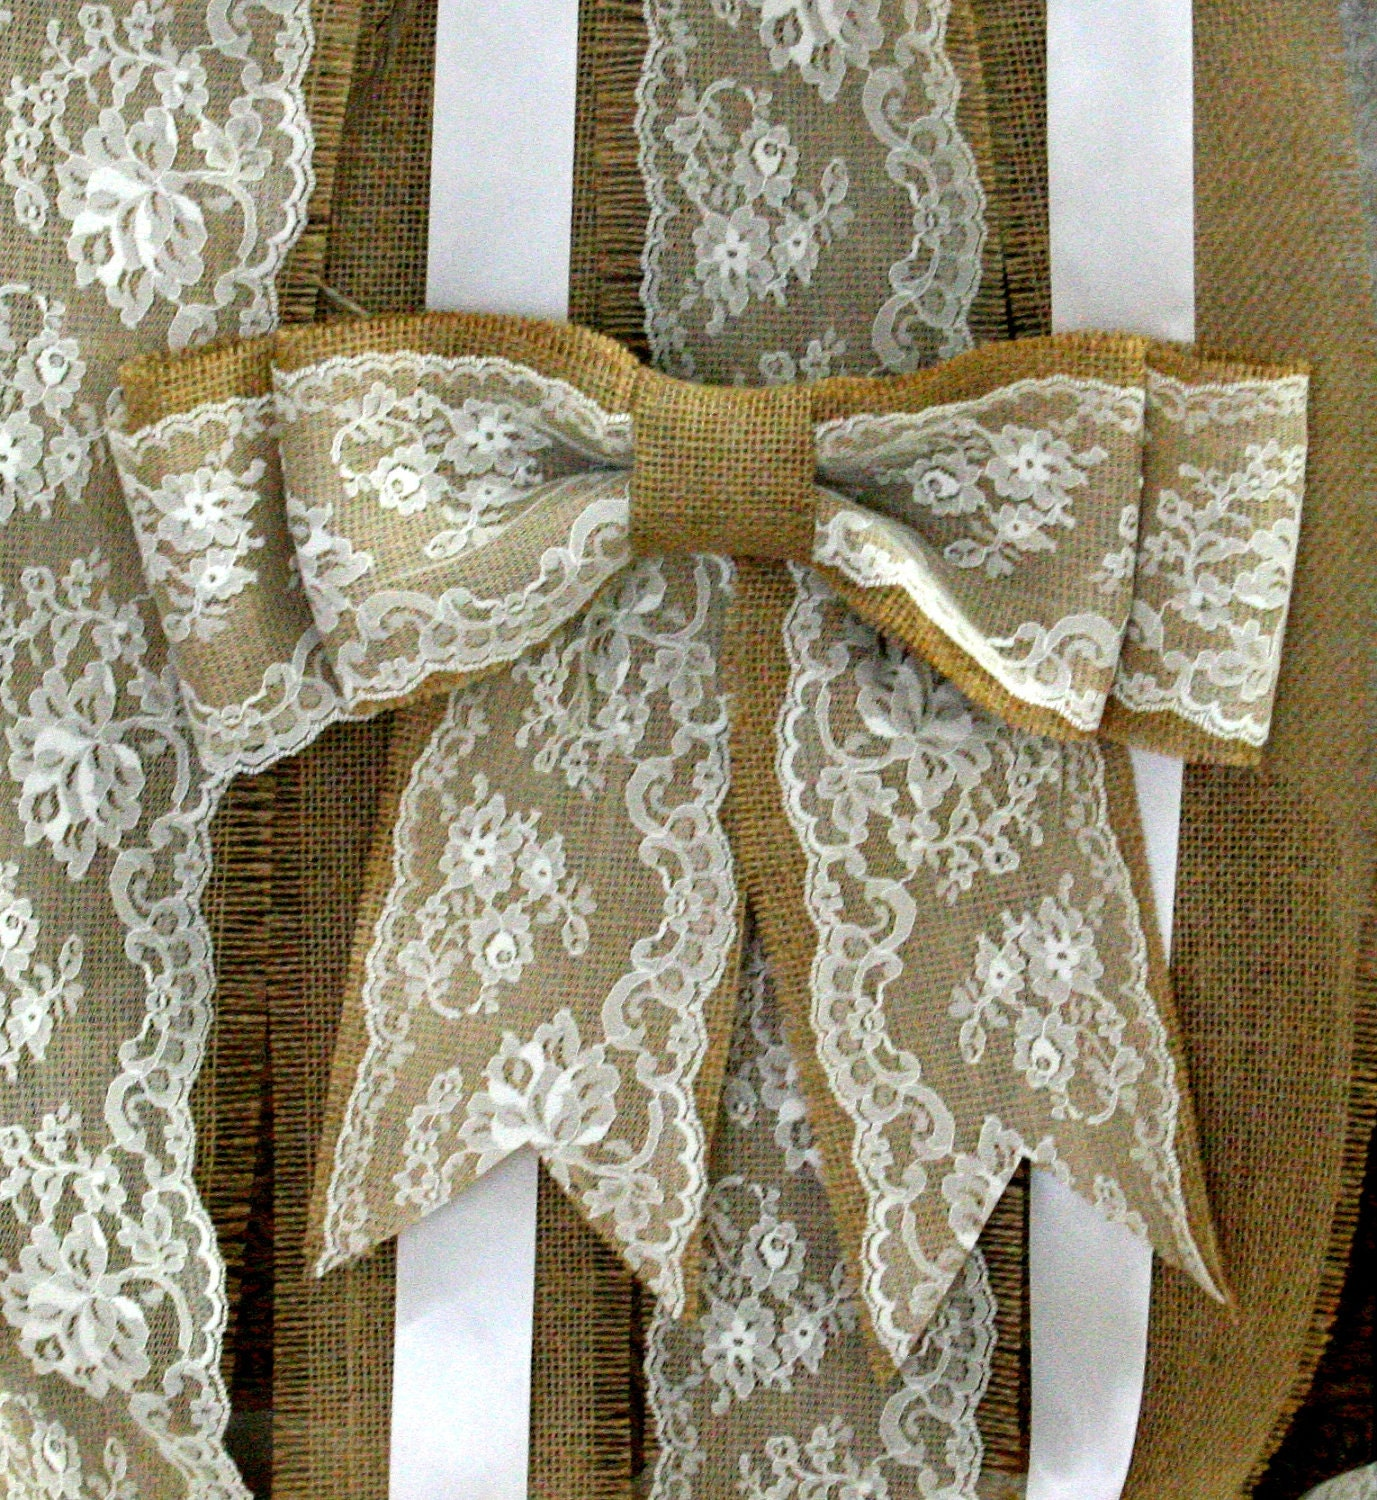 Pew ends on pinterest white hydrangeas pew bows and burlap pew bows - Bow decorations for weddings ...